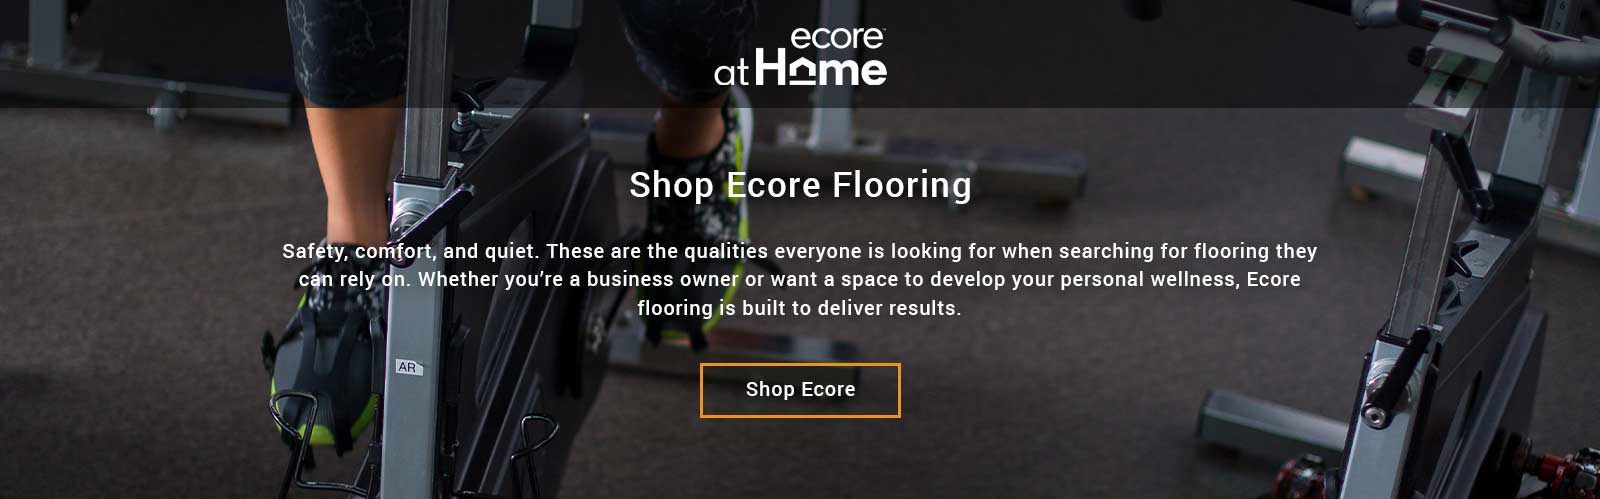 Shop Ecore at Home